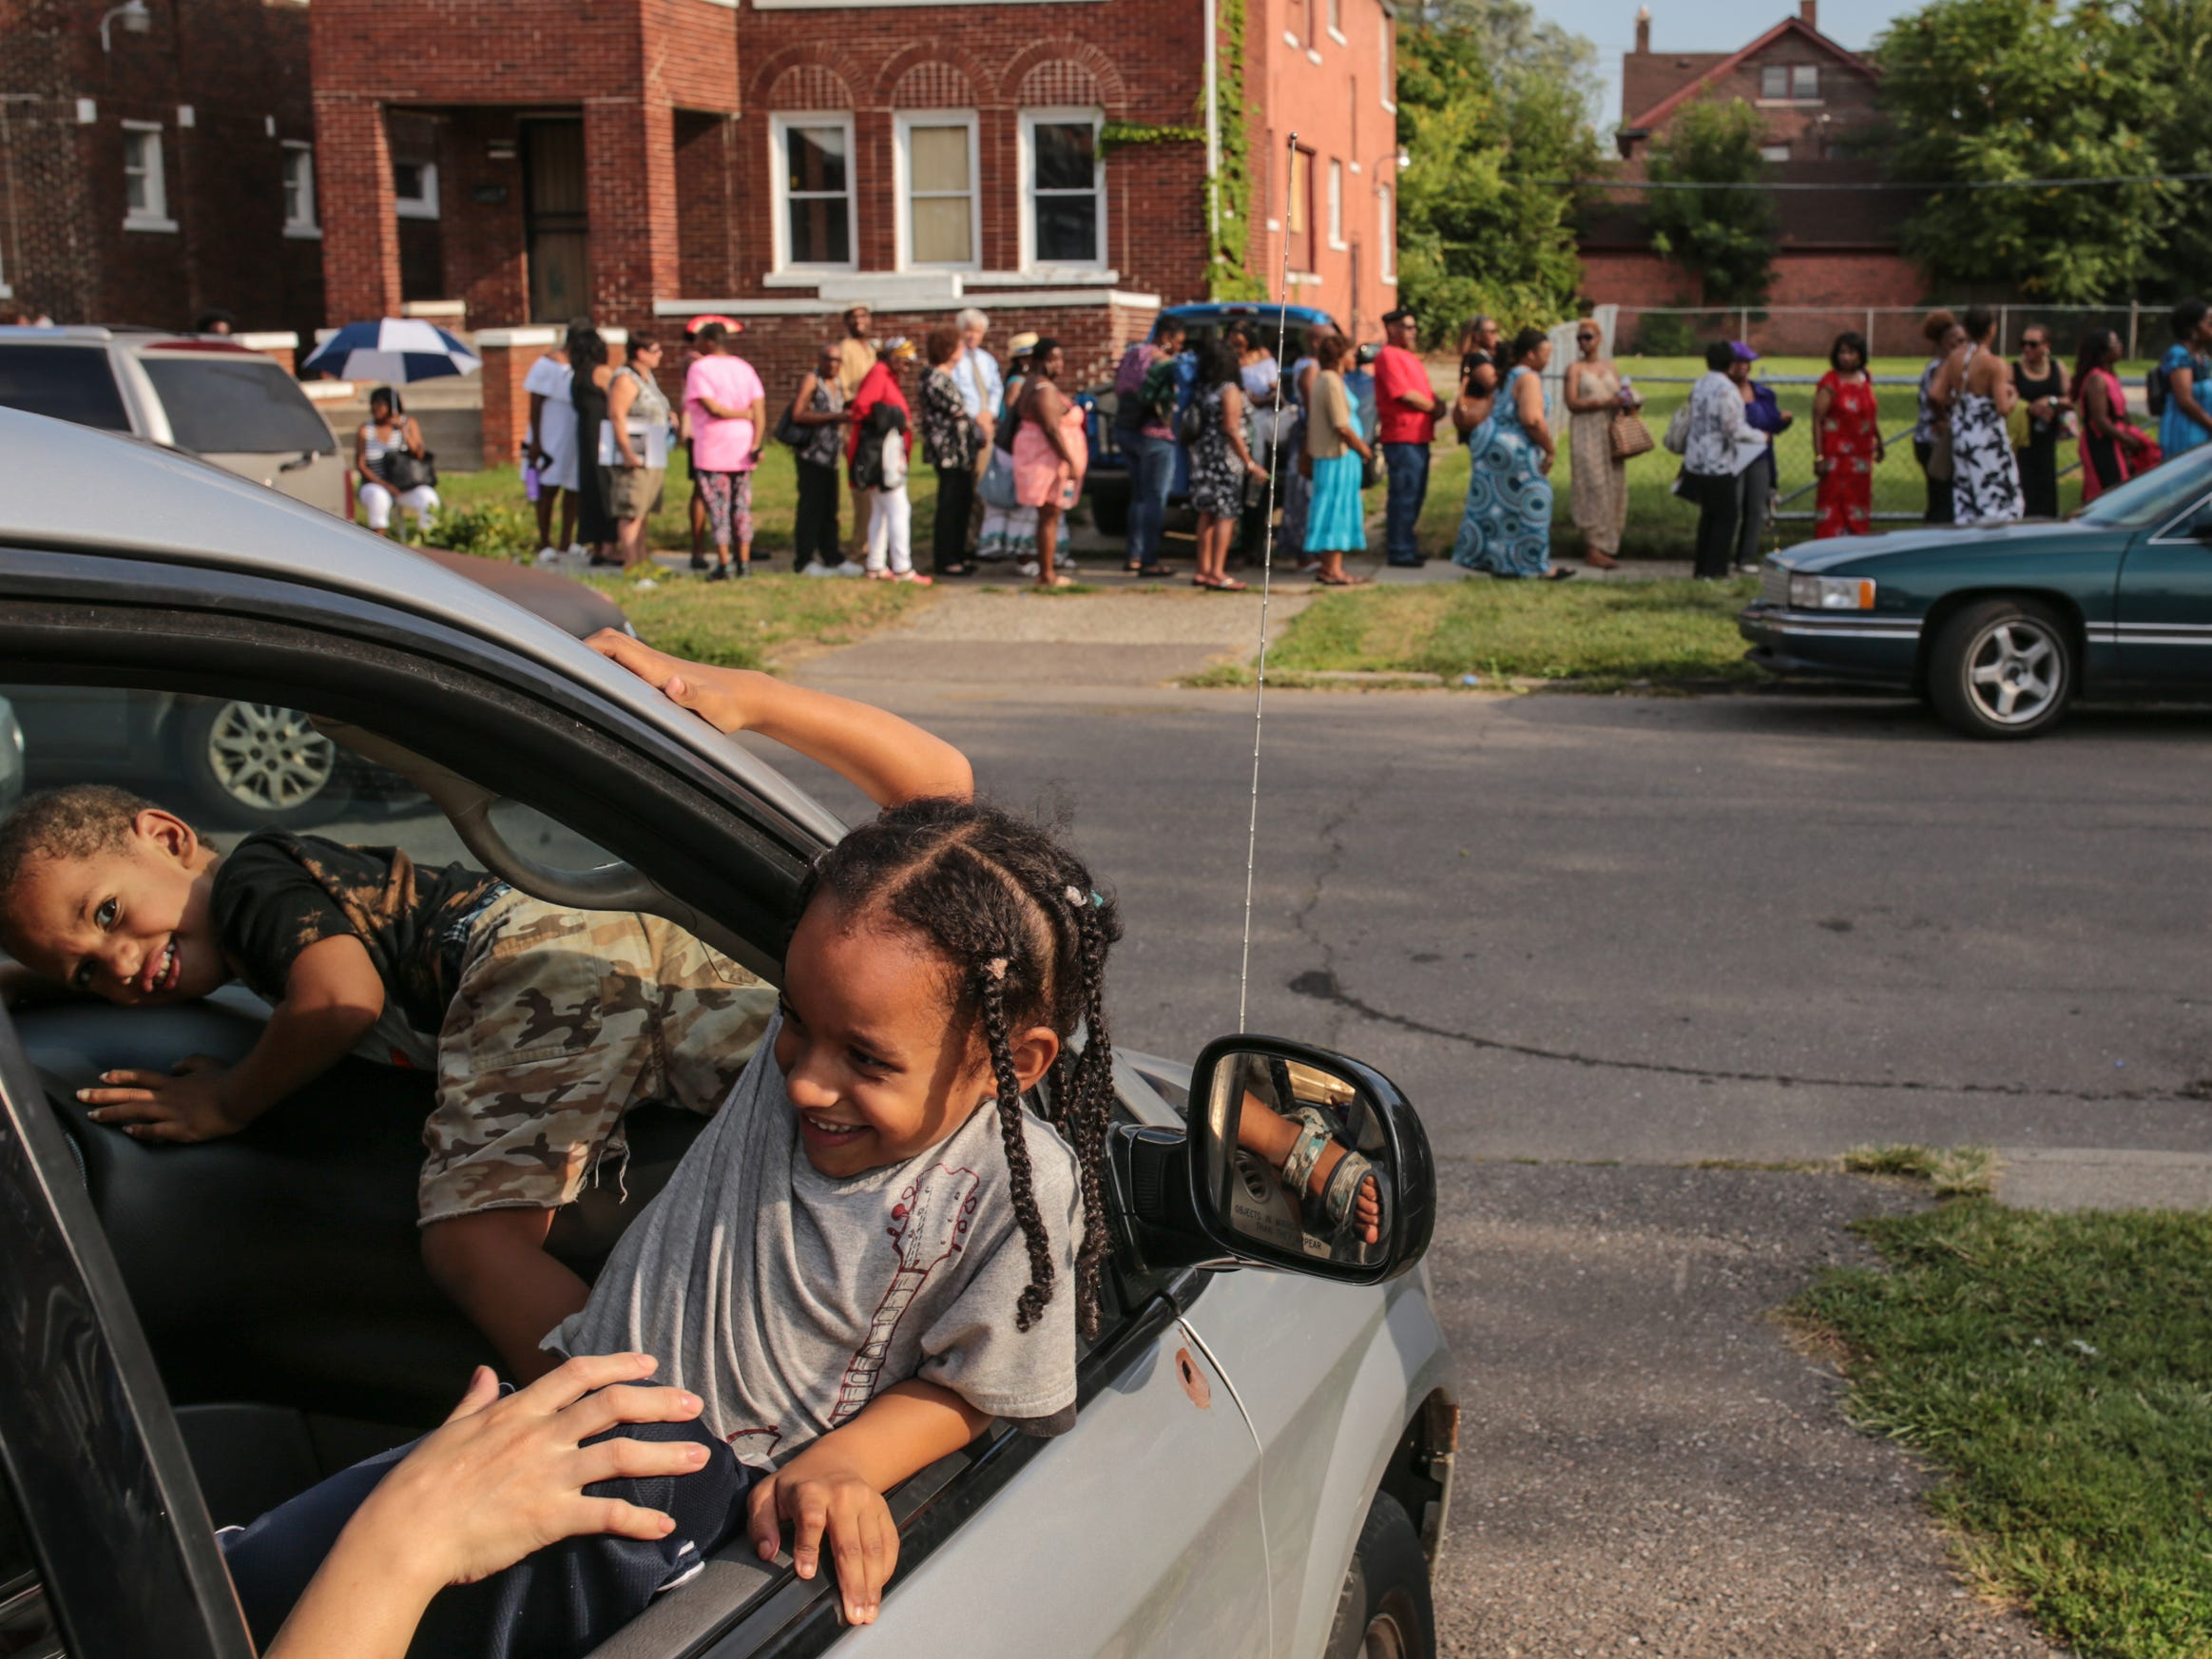 People wait in line for the start of a gospel tribute concert for the late Aretha Franklin at New Bethel Baptist Church in Detroit on Monday, August 27, 2018.